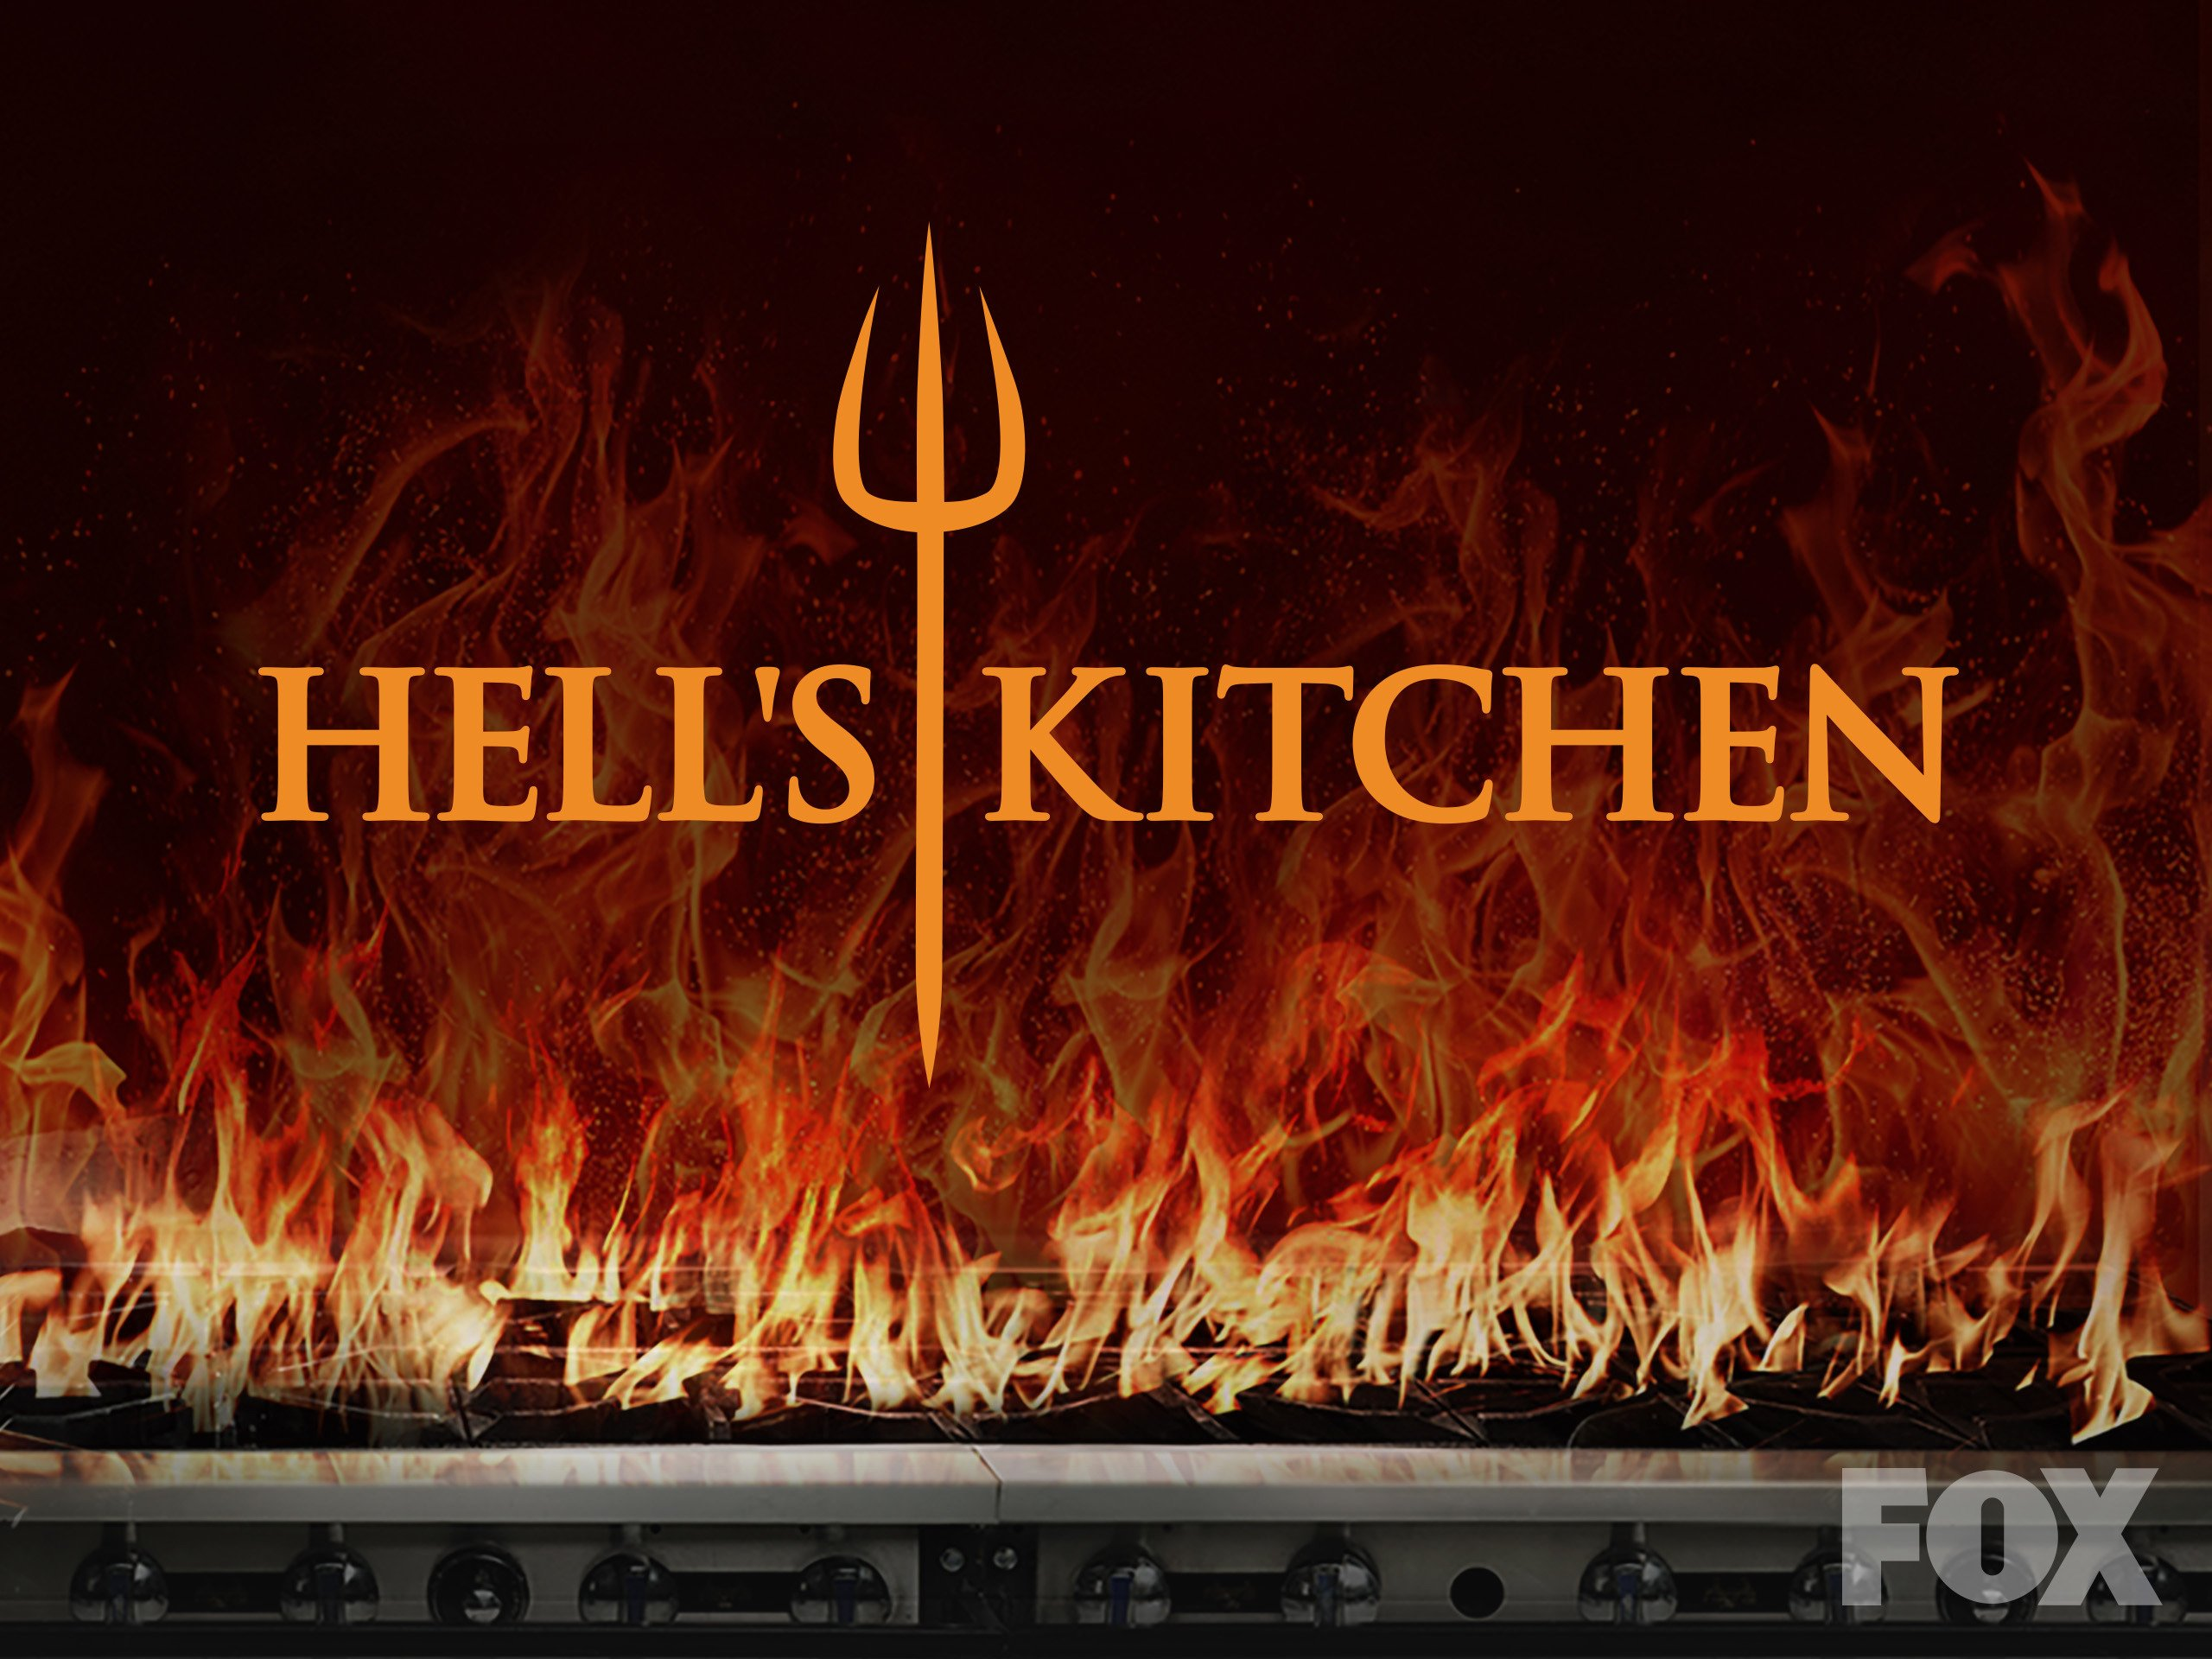 Sensational Amazon Com Watch Hells Kitchen Season 16 Prime Video Beutiful Home Inspiration Semekurdistantinfo